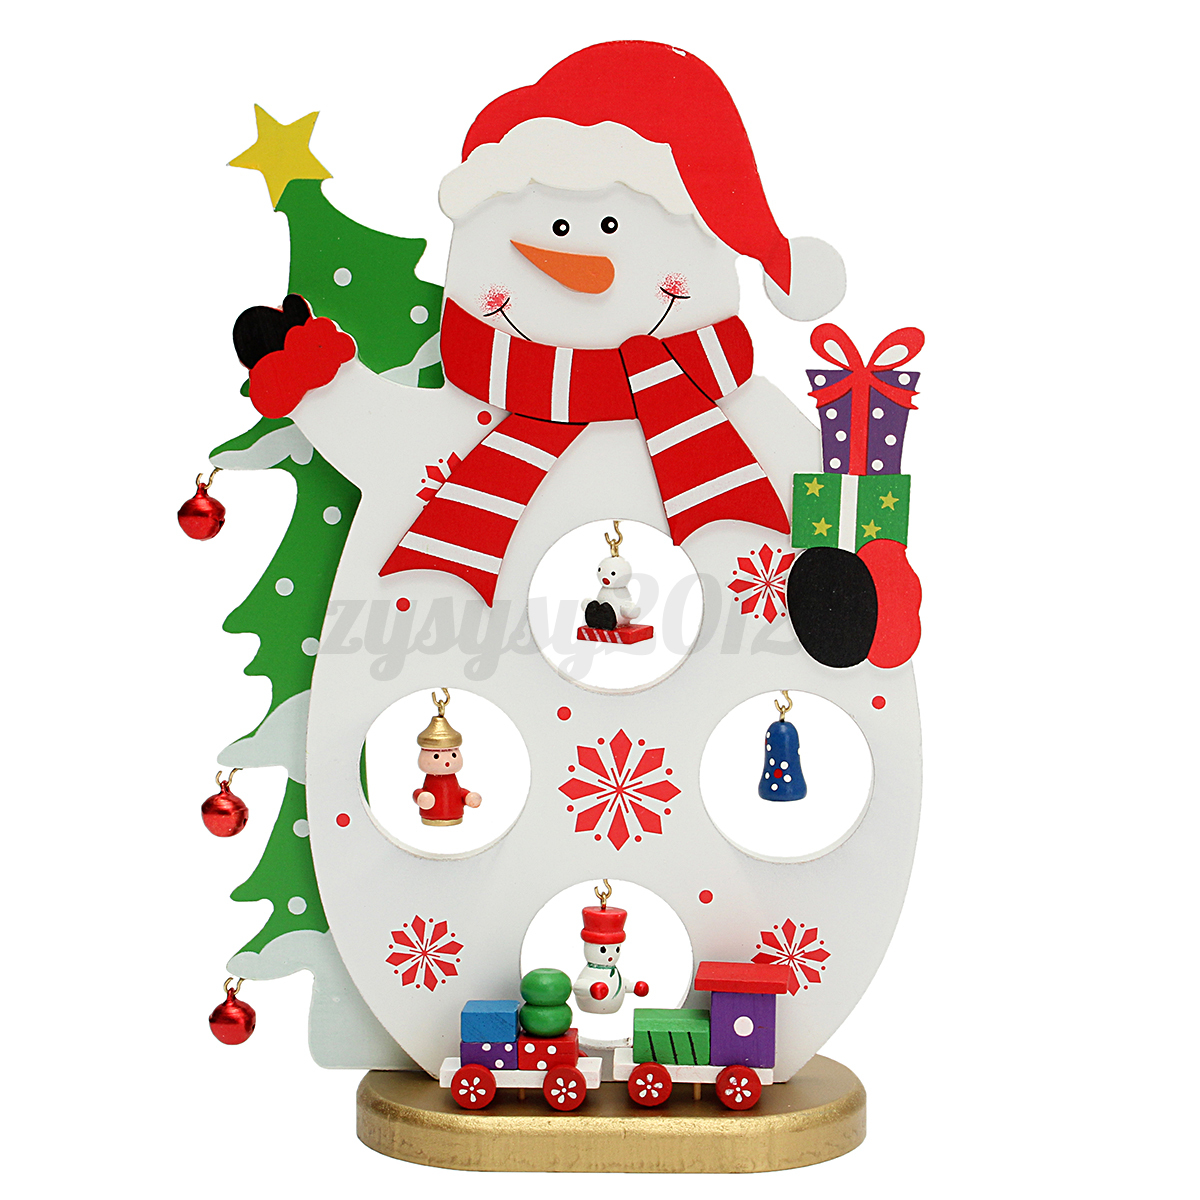 Santa Claus Decorations Uk: Wooden Christmas Tree Santa Claus Ornaments Desk Table